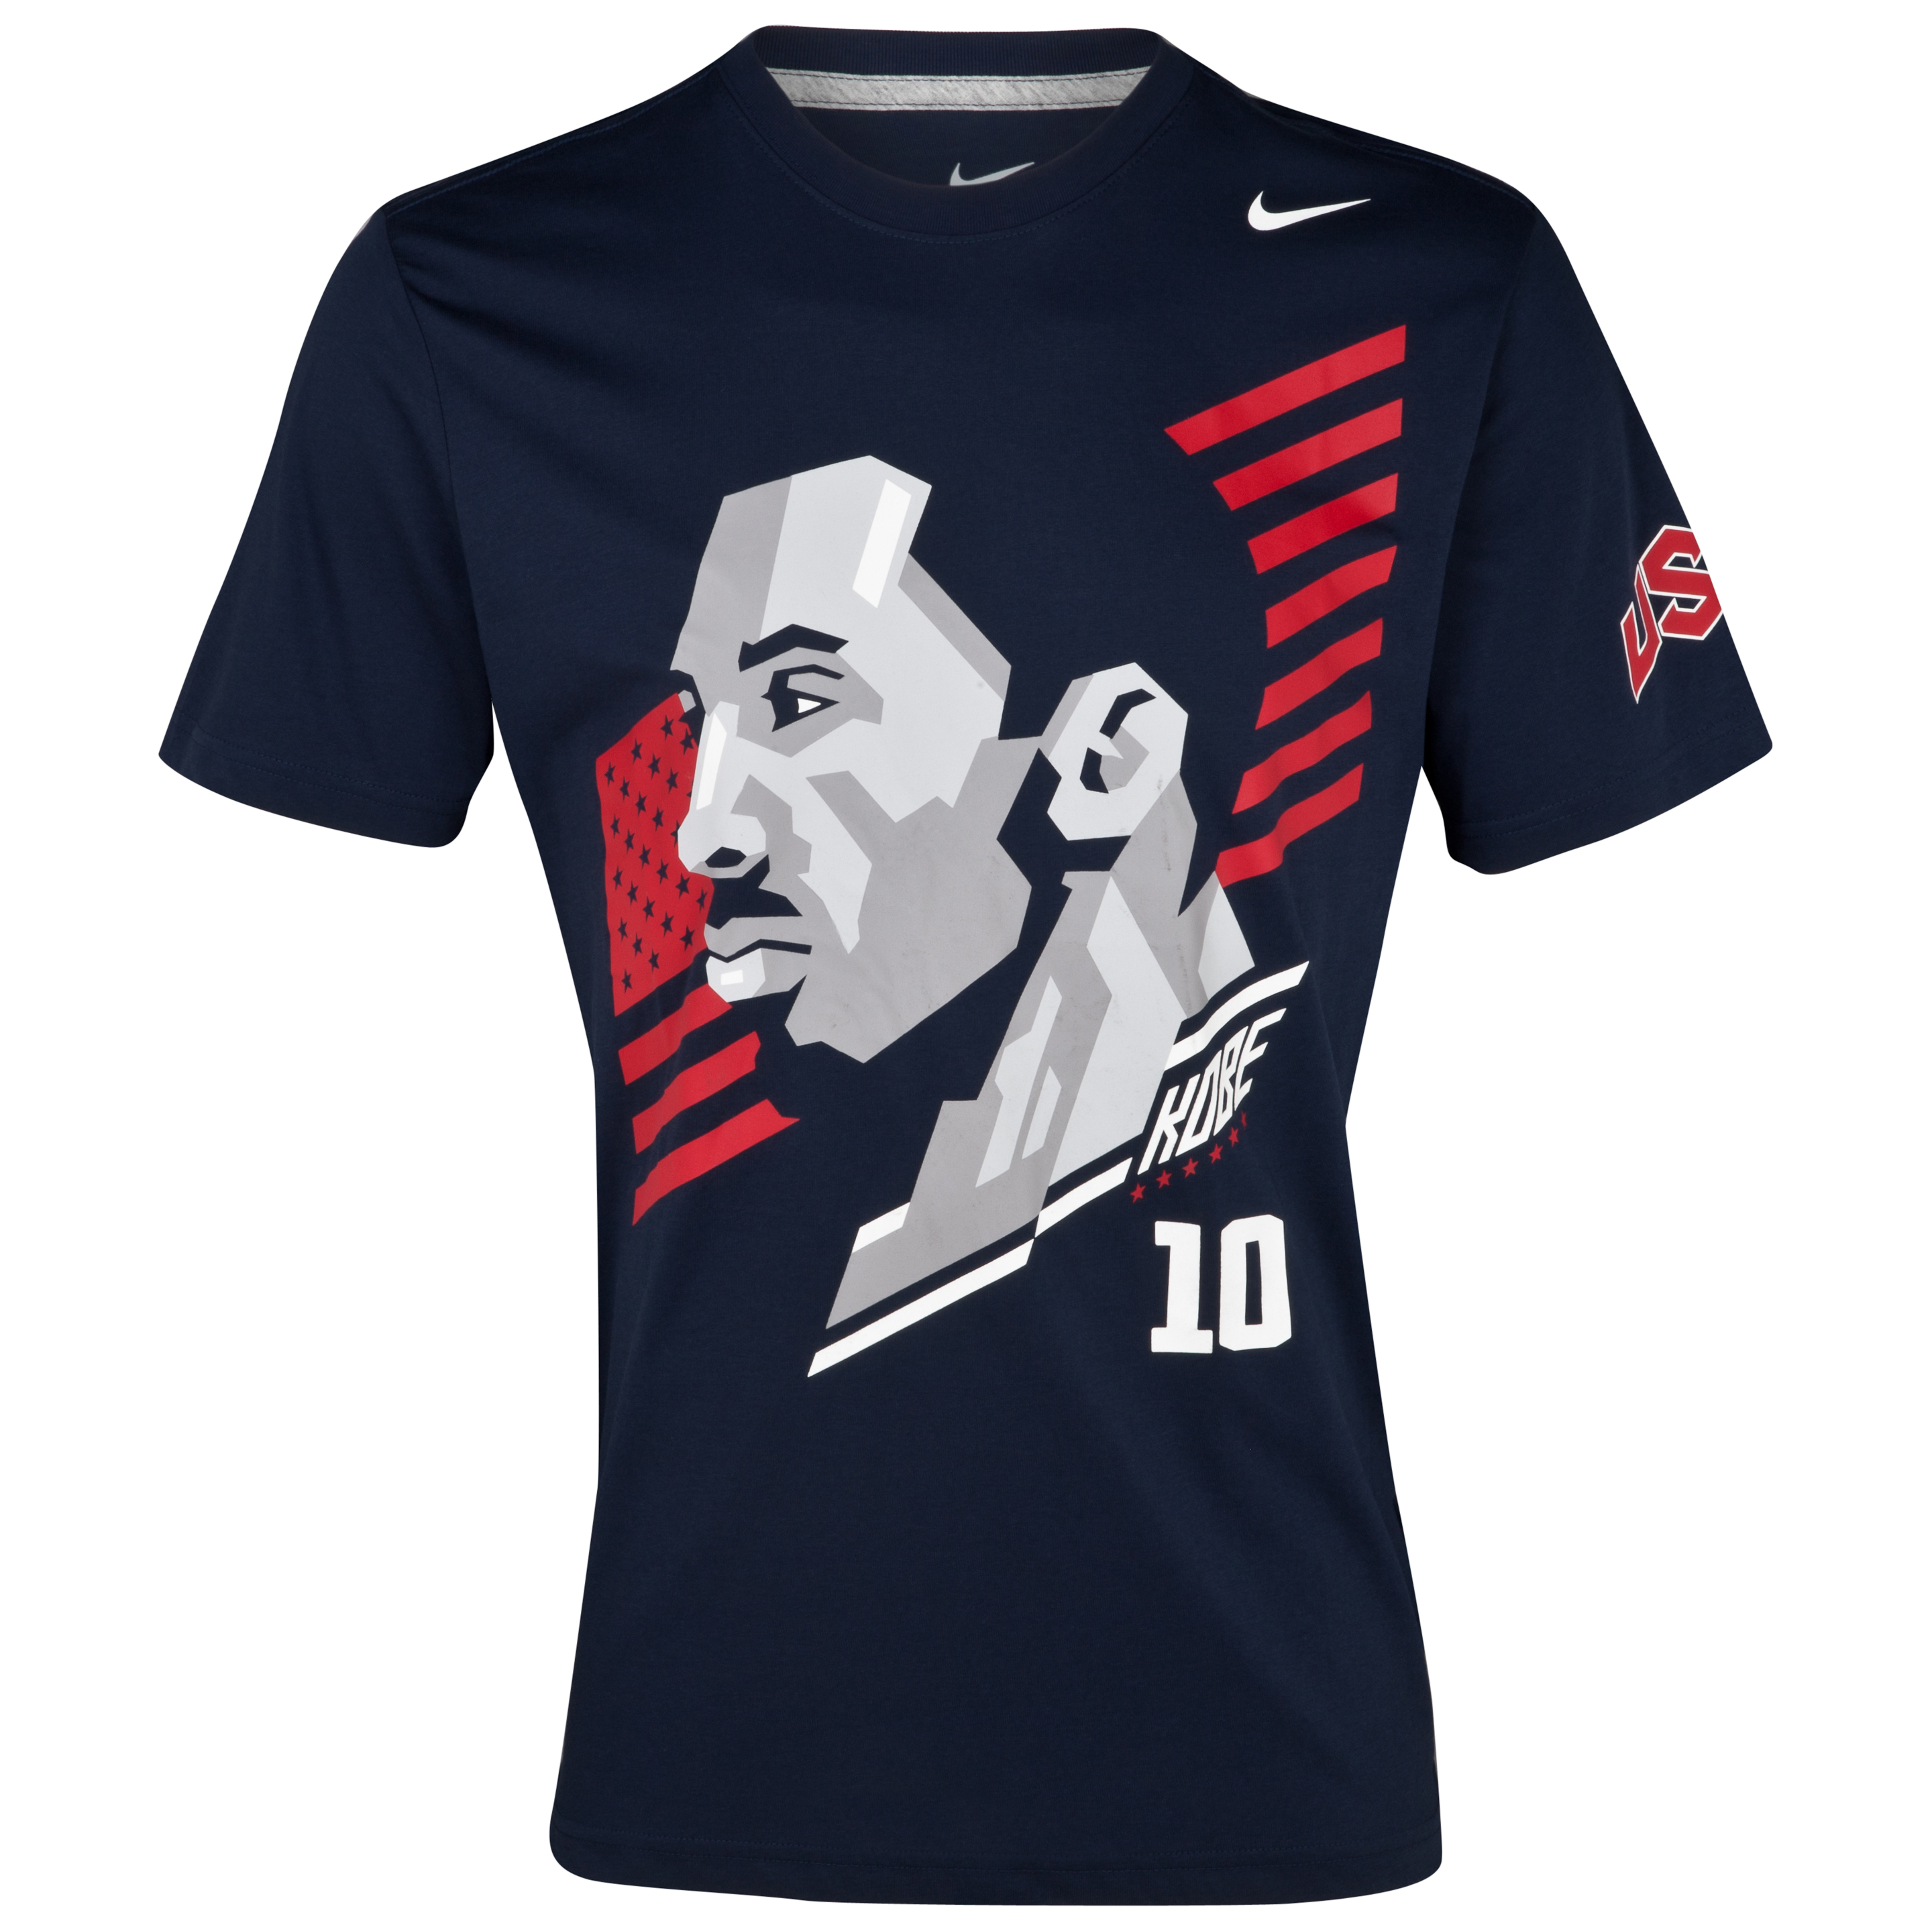 Nike USA Kobe Hero T-Shirt - Obsidian/ DK Grey Heather